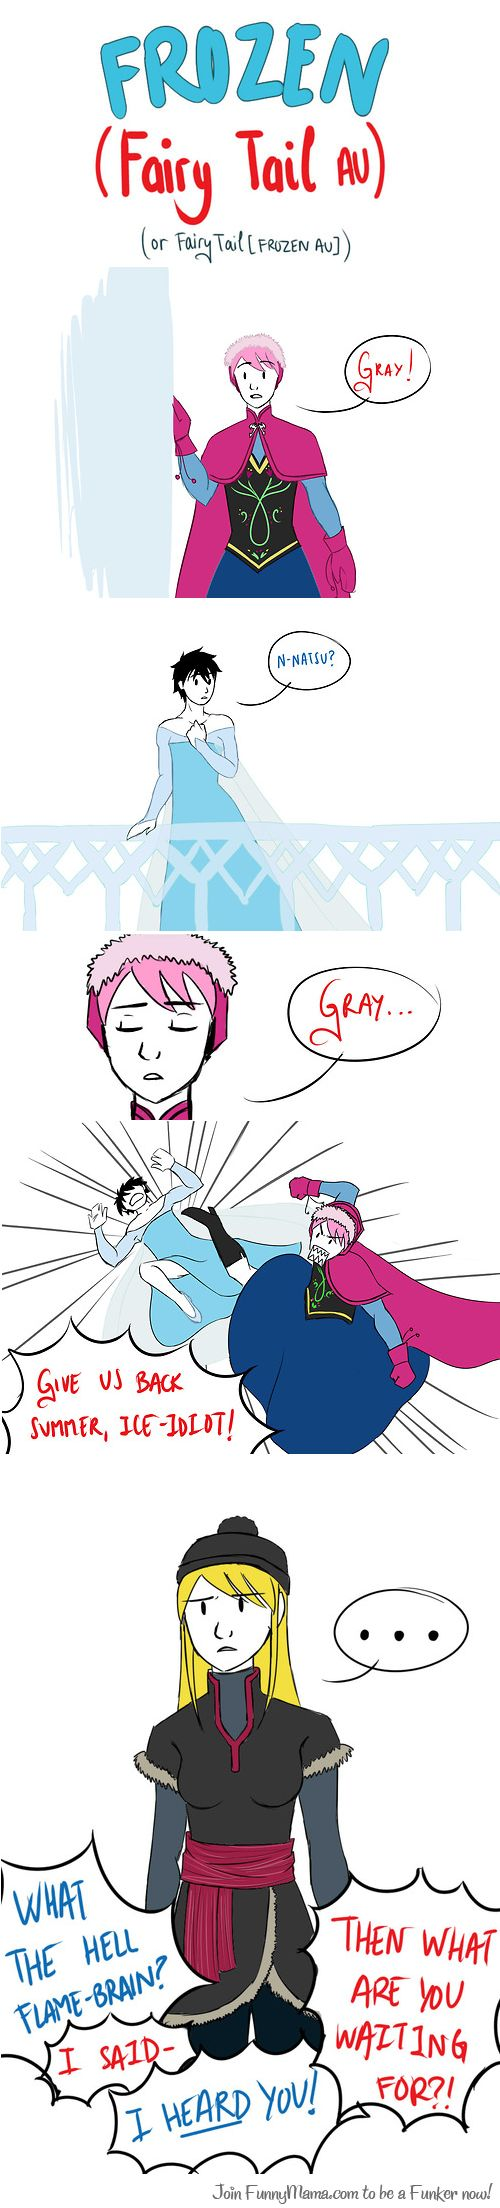 Frozen x Fairy tail AU Lol